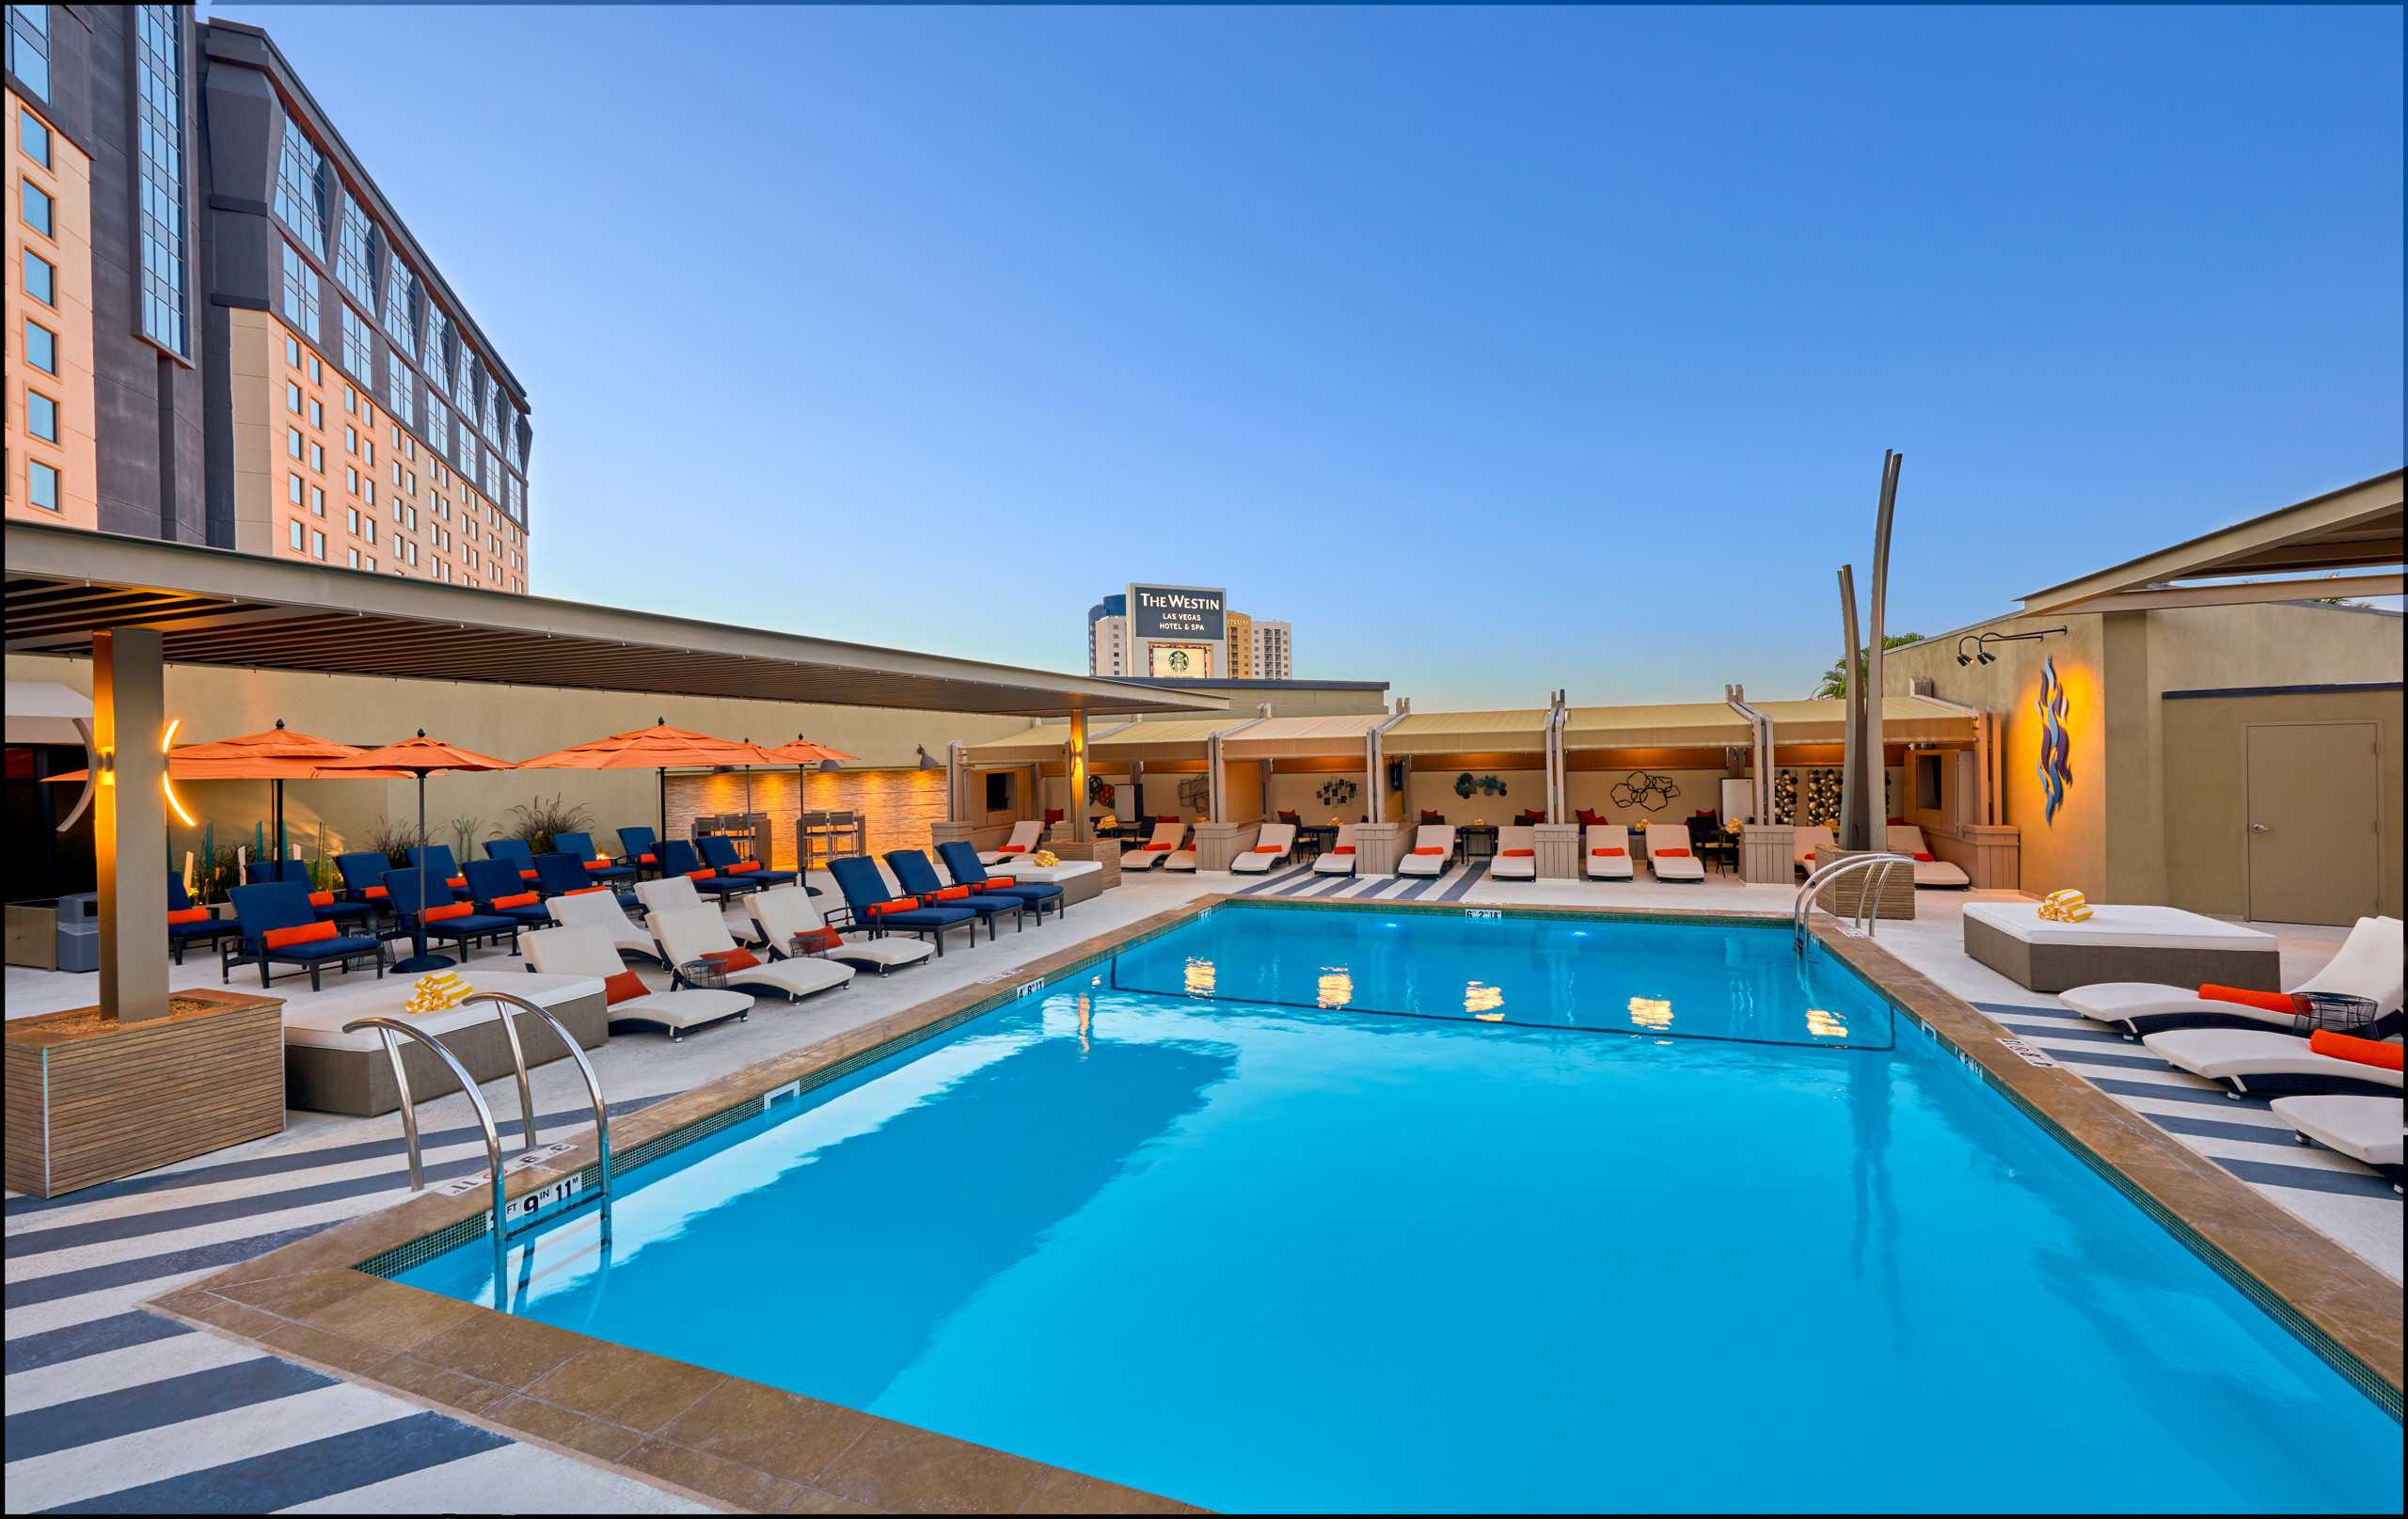 The Newly Renovated Pool at the Westin Hotel and Spa